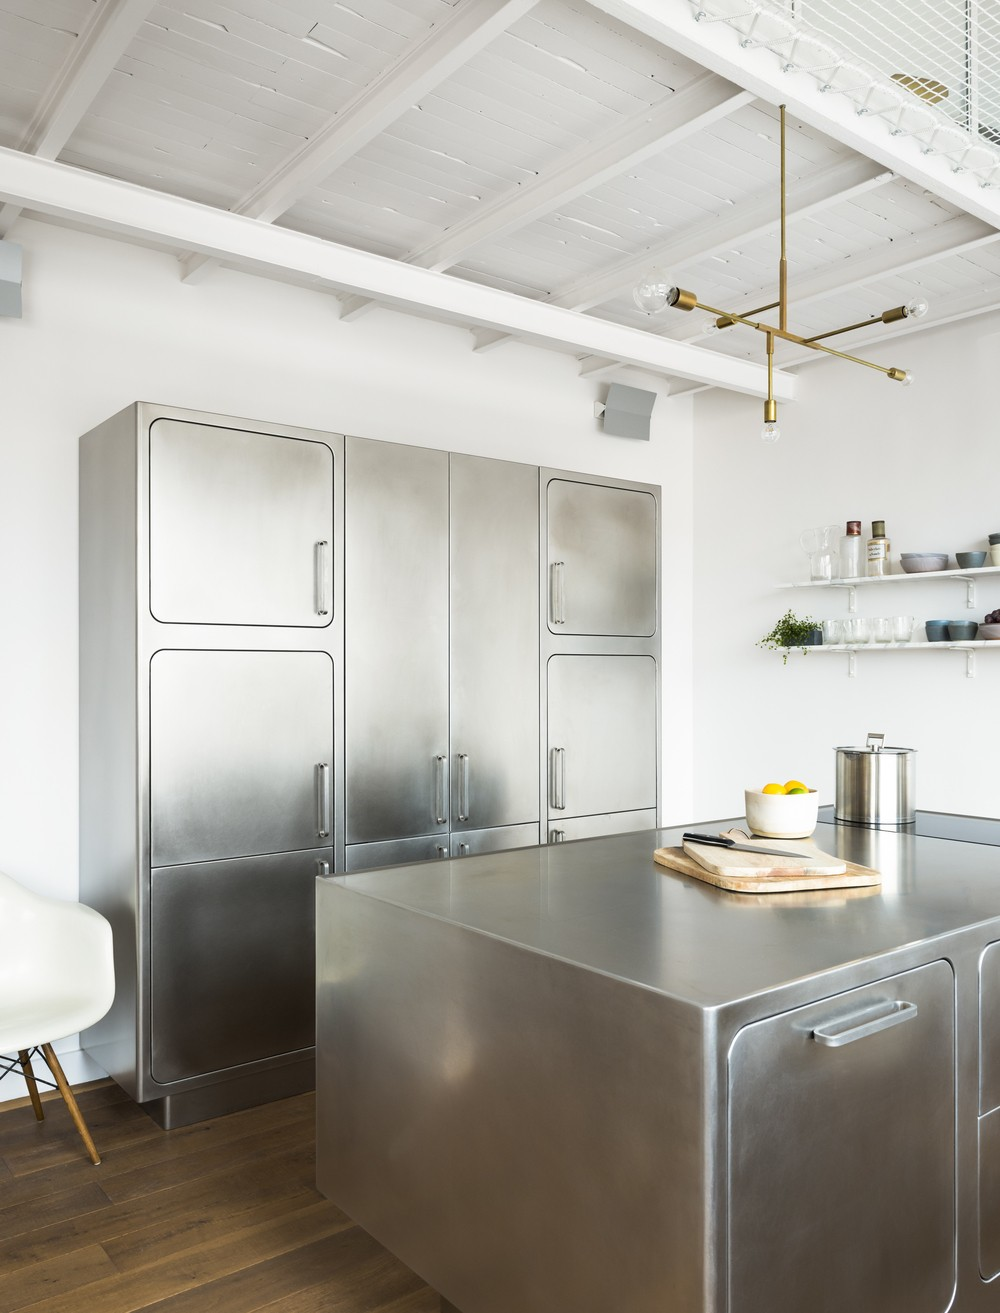 Industrial Style Kitchen This Industrial Style Kitchen Will Be the Division of Your Dreams This Industrial Style Kitchen Will Be the Division of Your Dreams 6